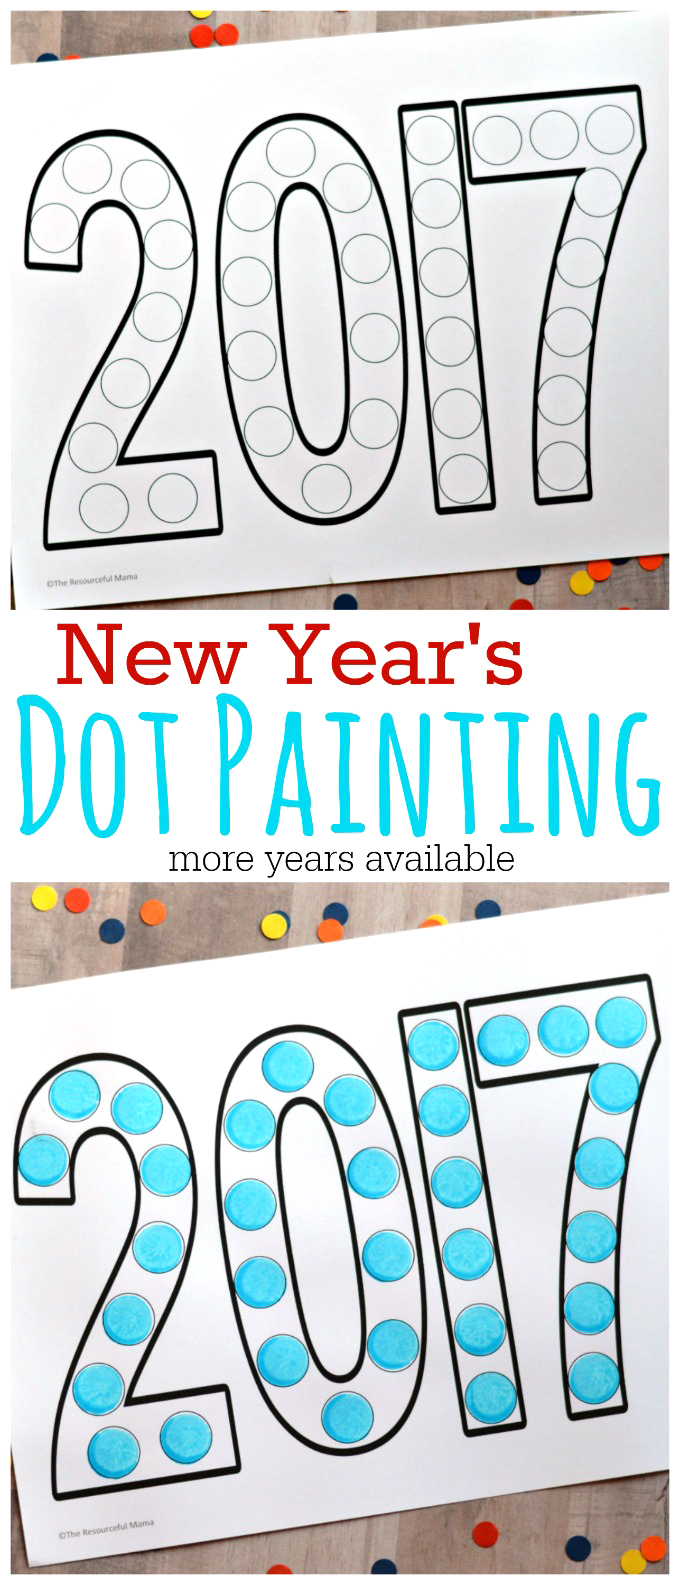 This dot painting activity is a fun way to involve kids in the New Year festivities. Free Printable | Do a Dot | New Year's Eve | Year activity